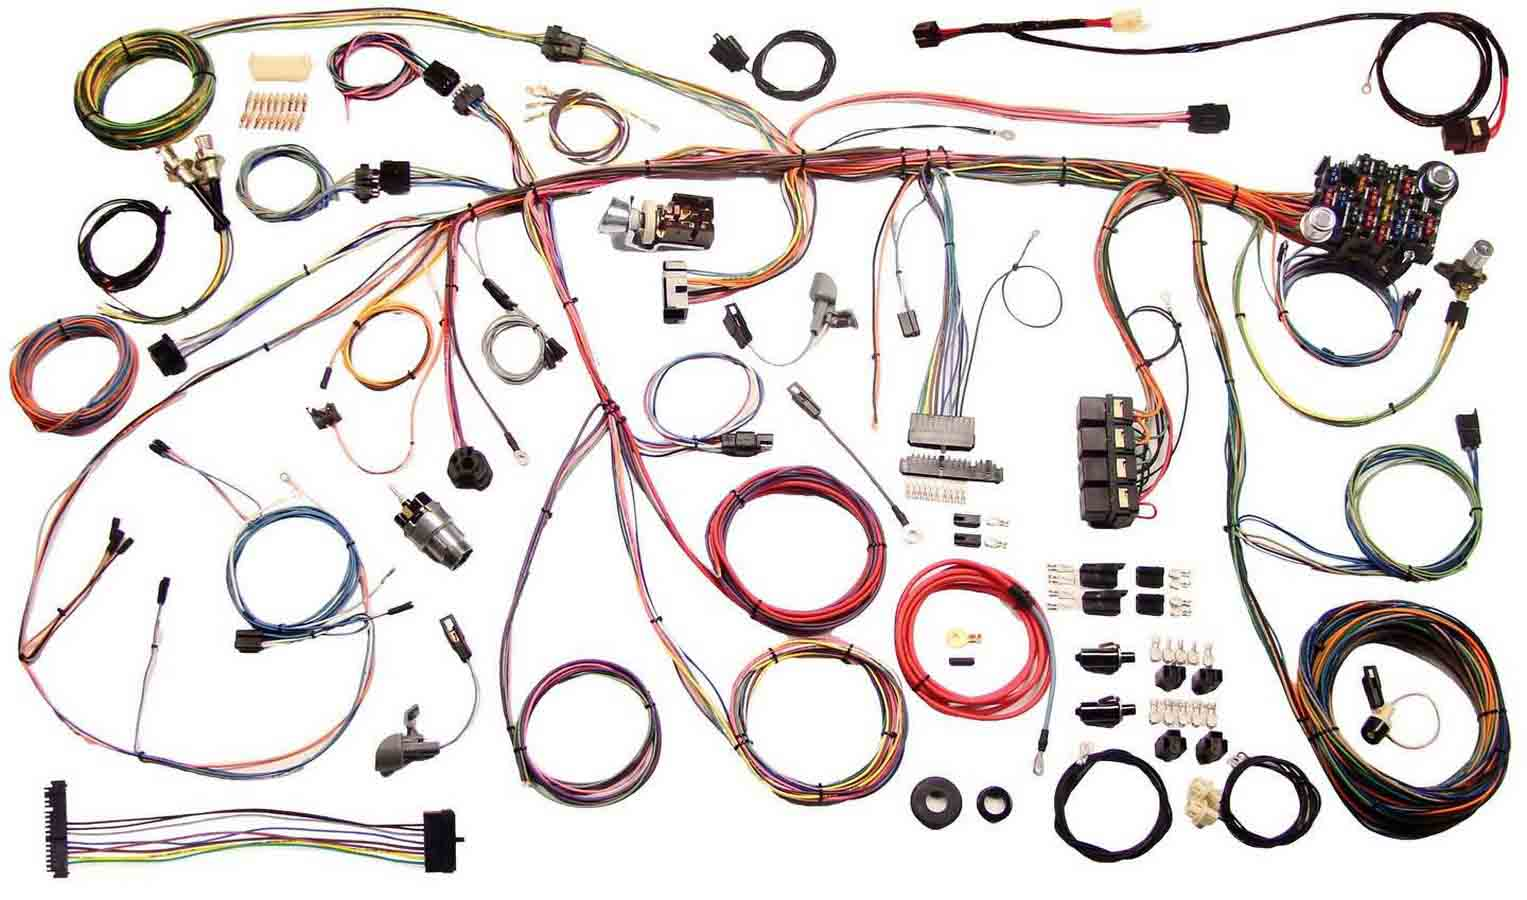 Shop For American Autowire Wiring Harnesses Etheridge Race Parts Automotive Harness 70 Mustang Harnes Complete Car